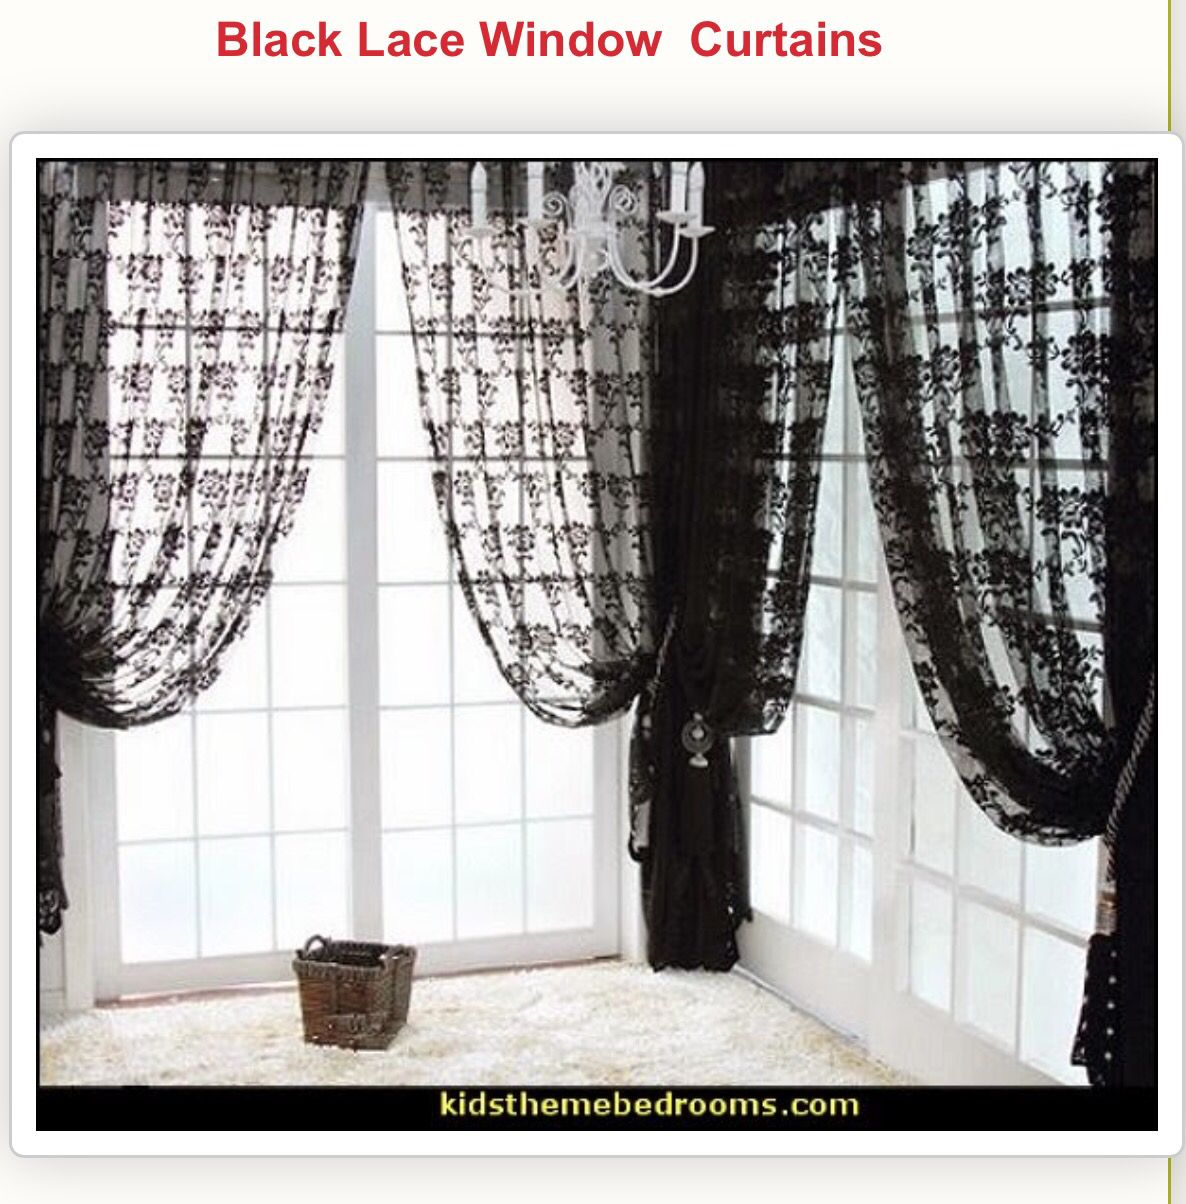 Black Lace Skull Curtains Lace Curtains Drapes Curtains Gothic